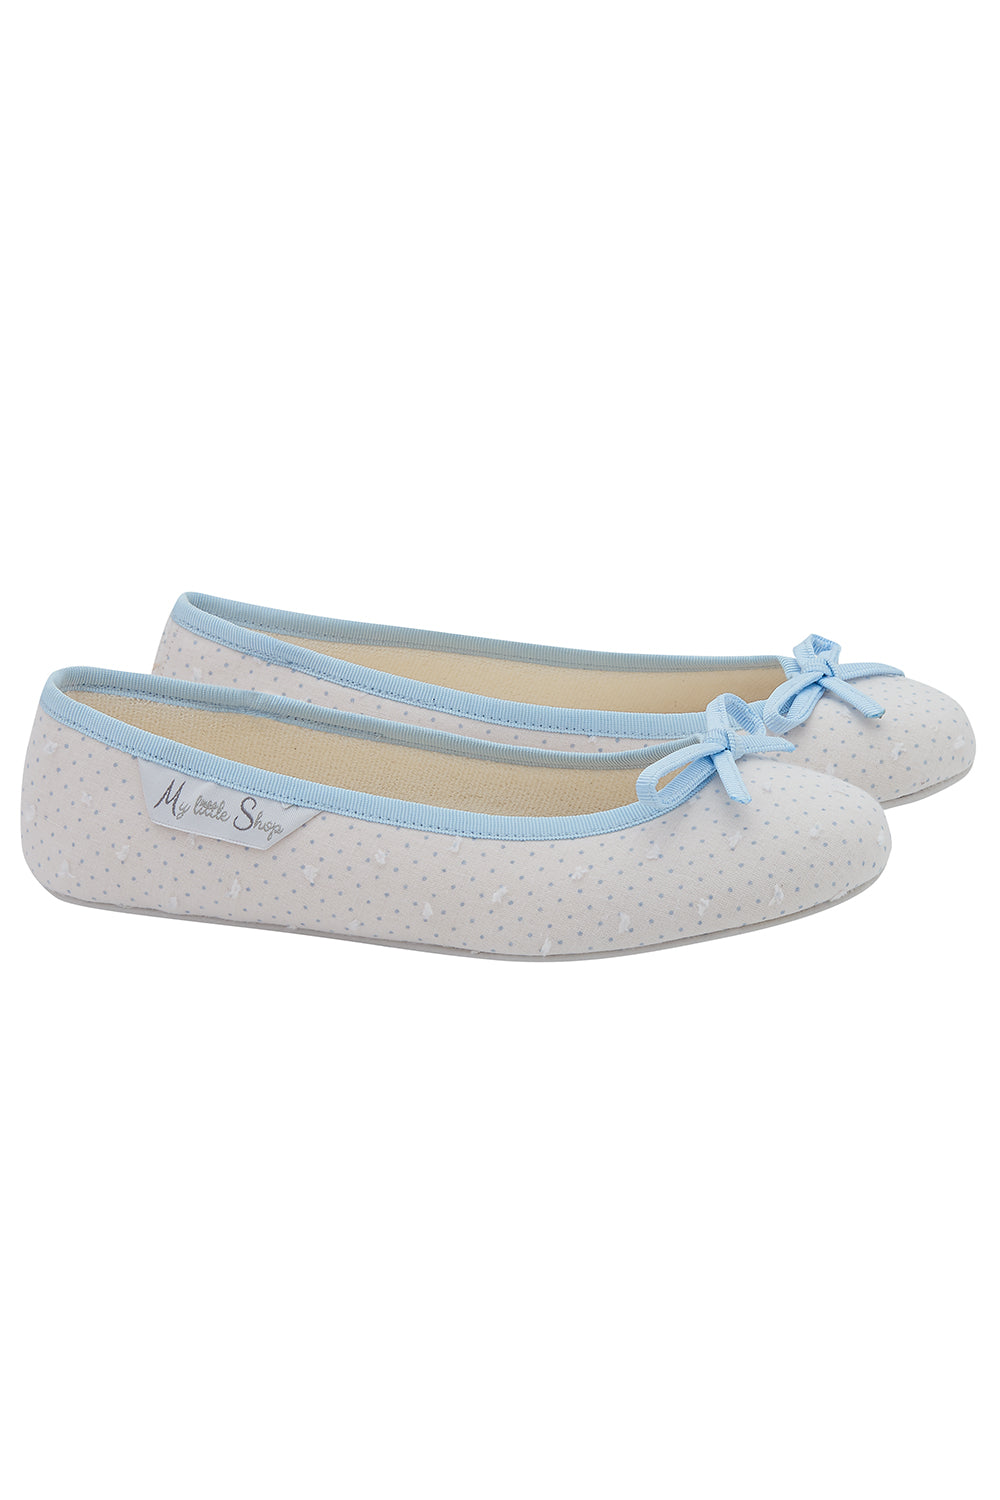 Bleuet Girls Slippers